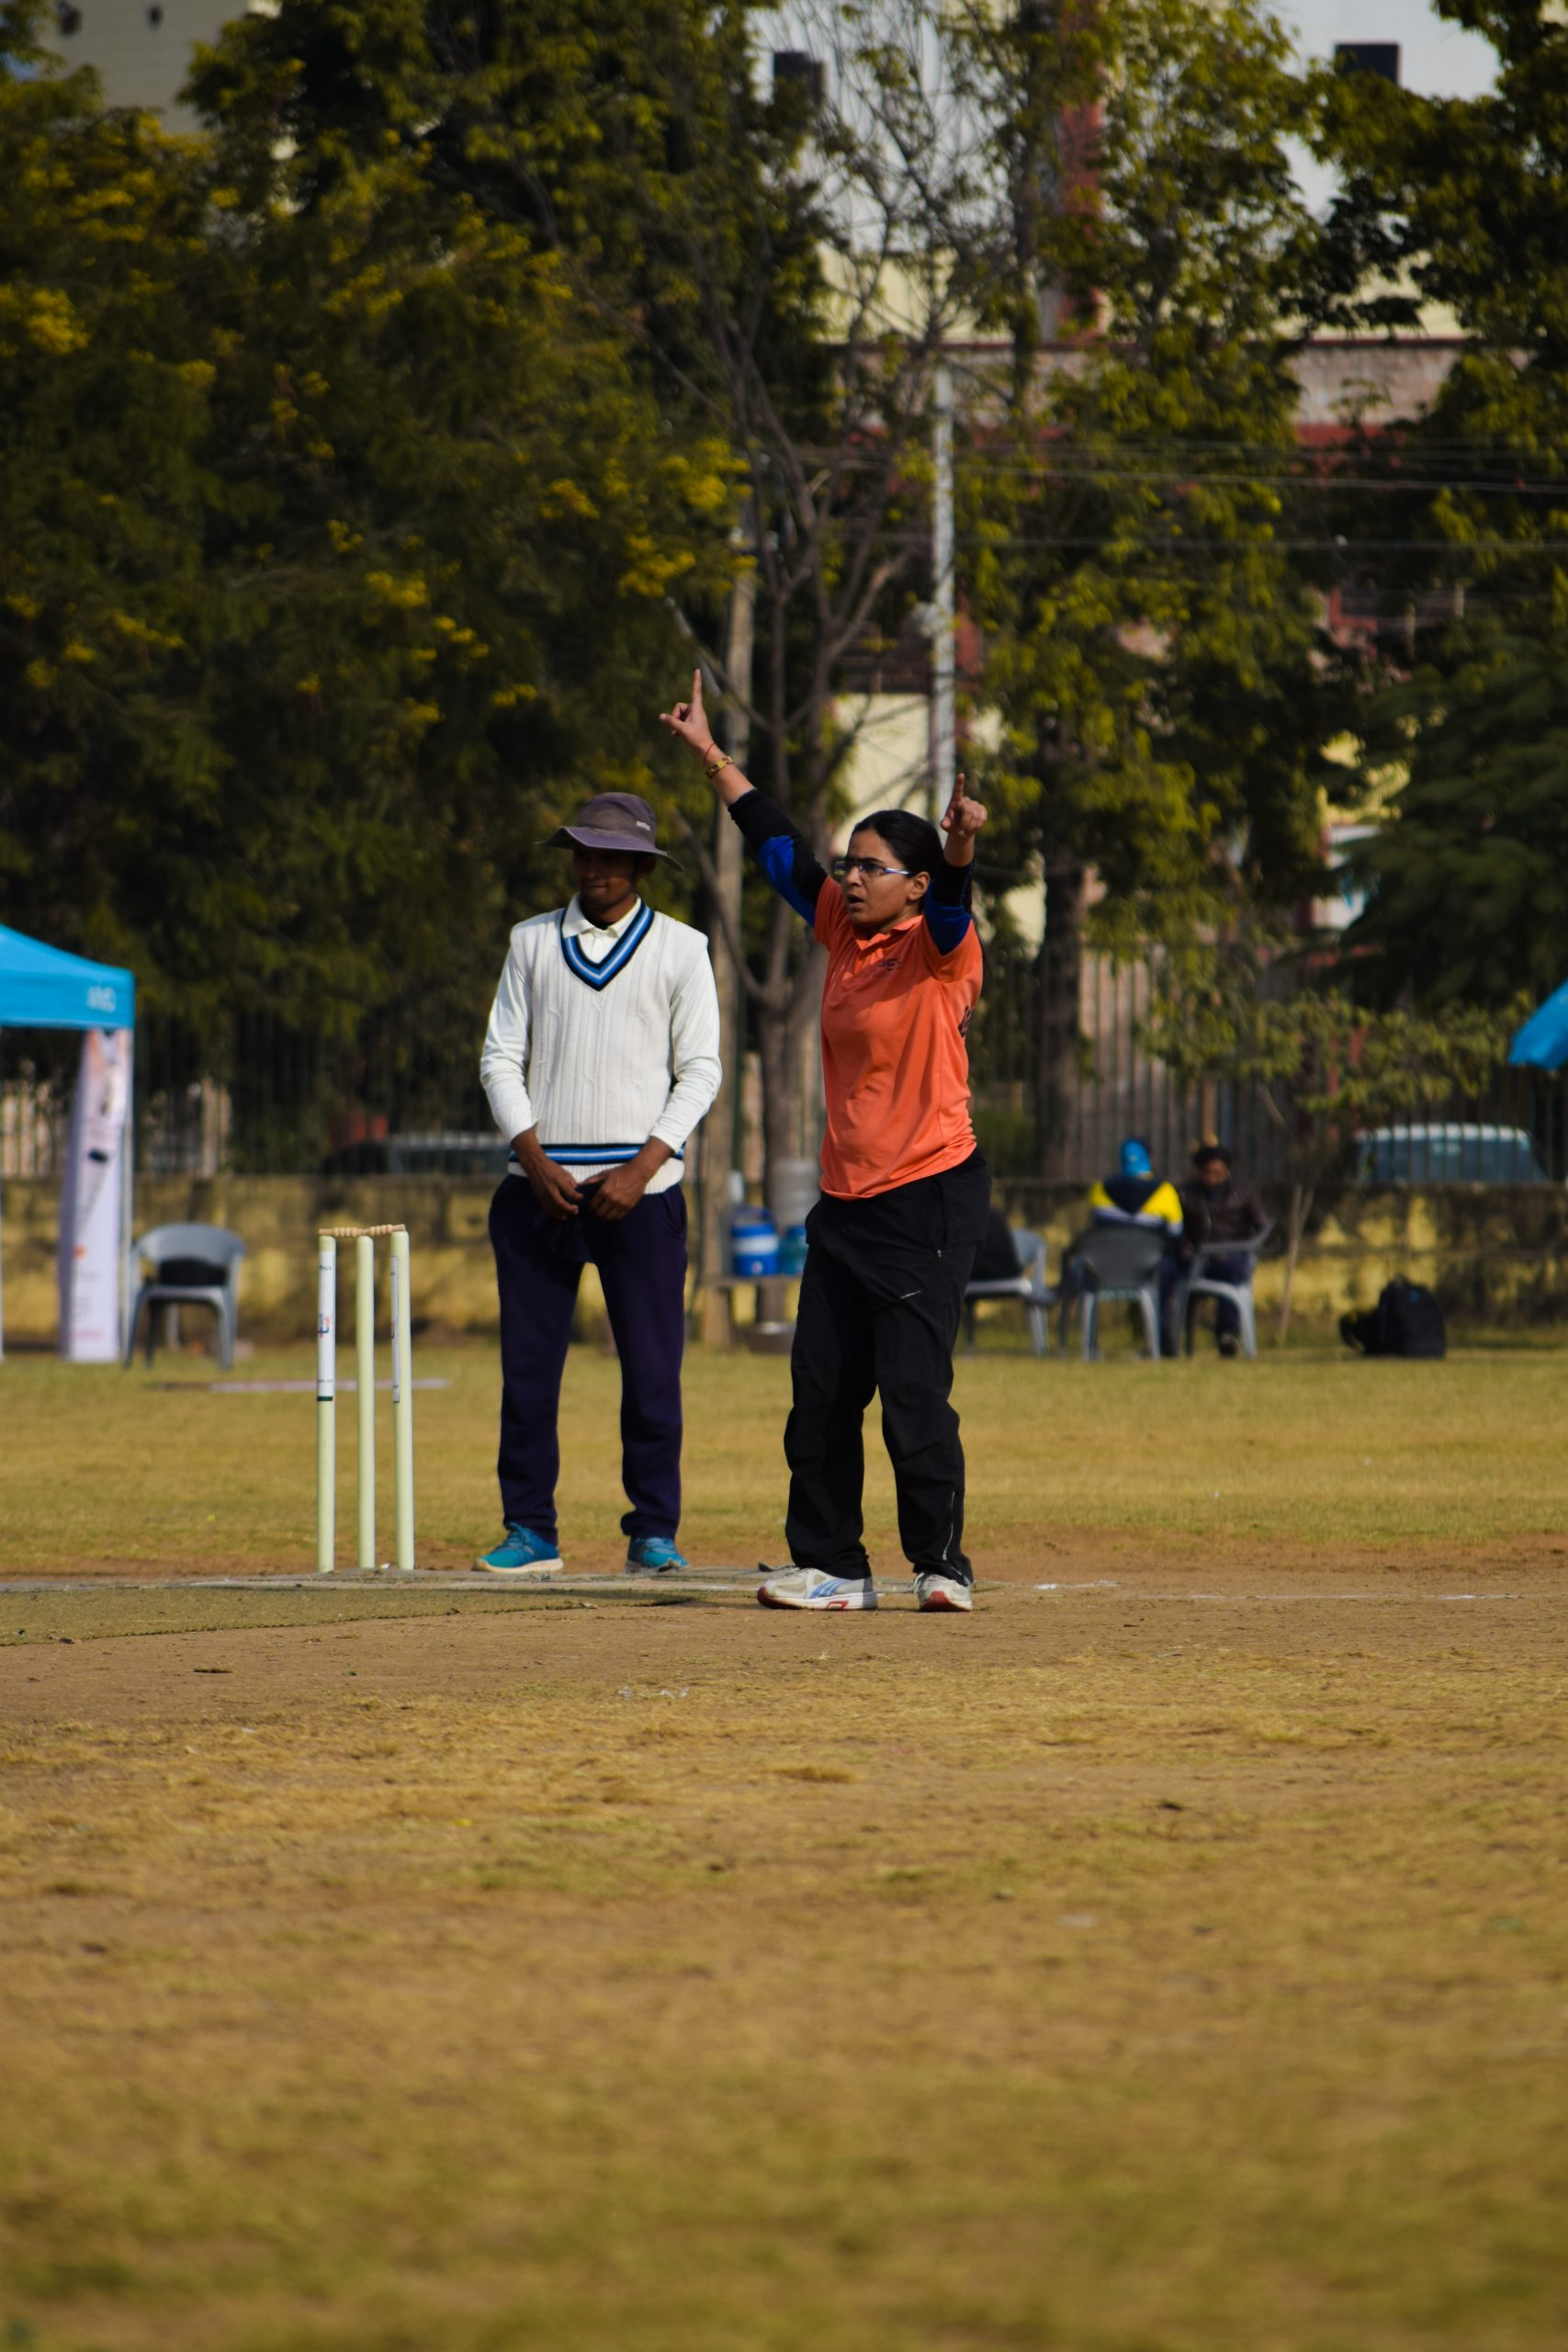 A girl cricketer after taking a wicket